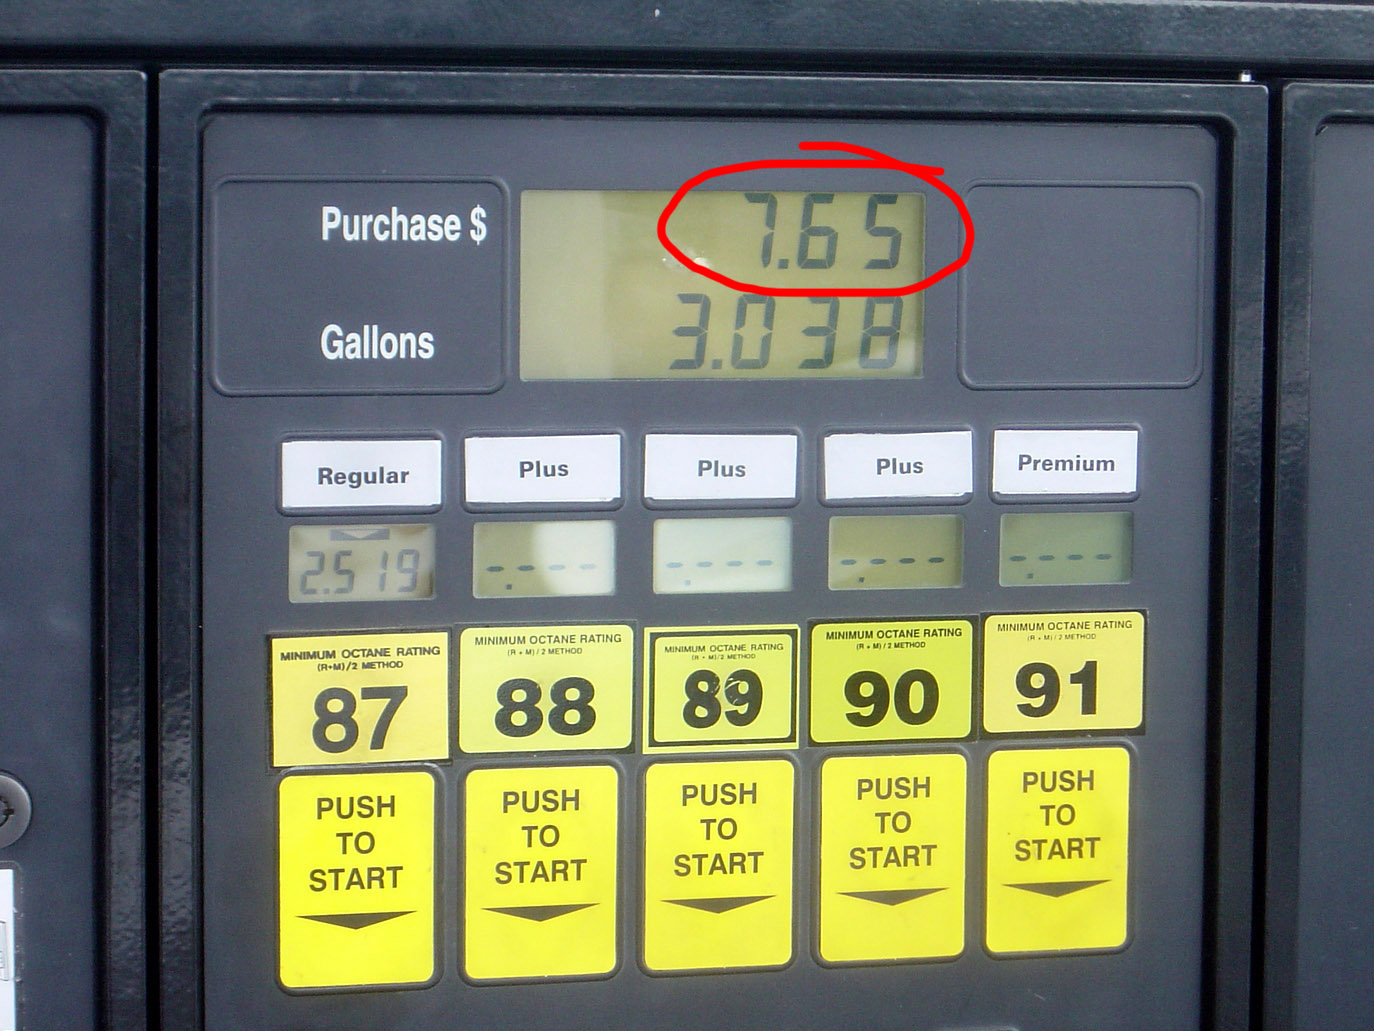 Taking a picture of the gas pump is a funny receipt.